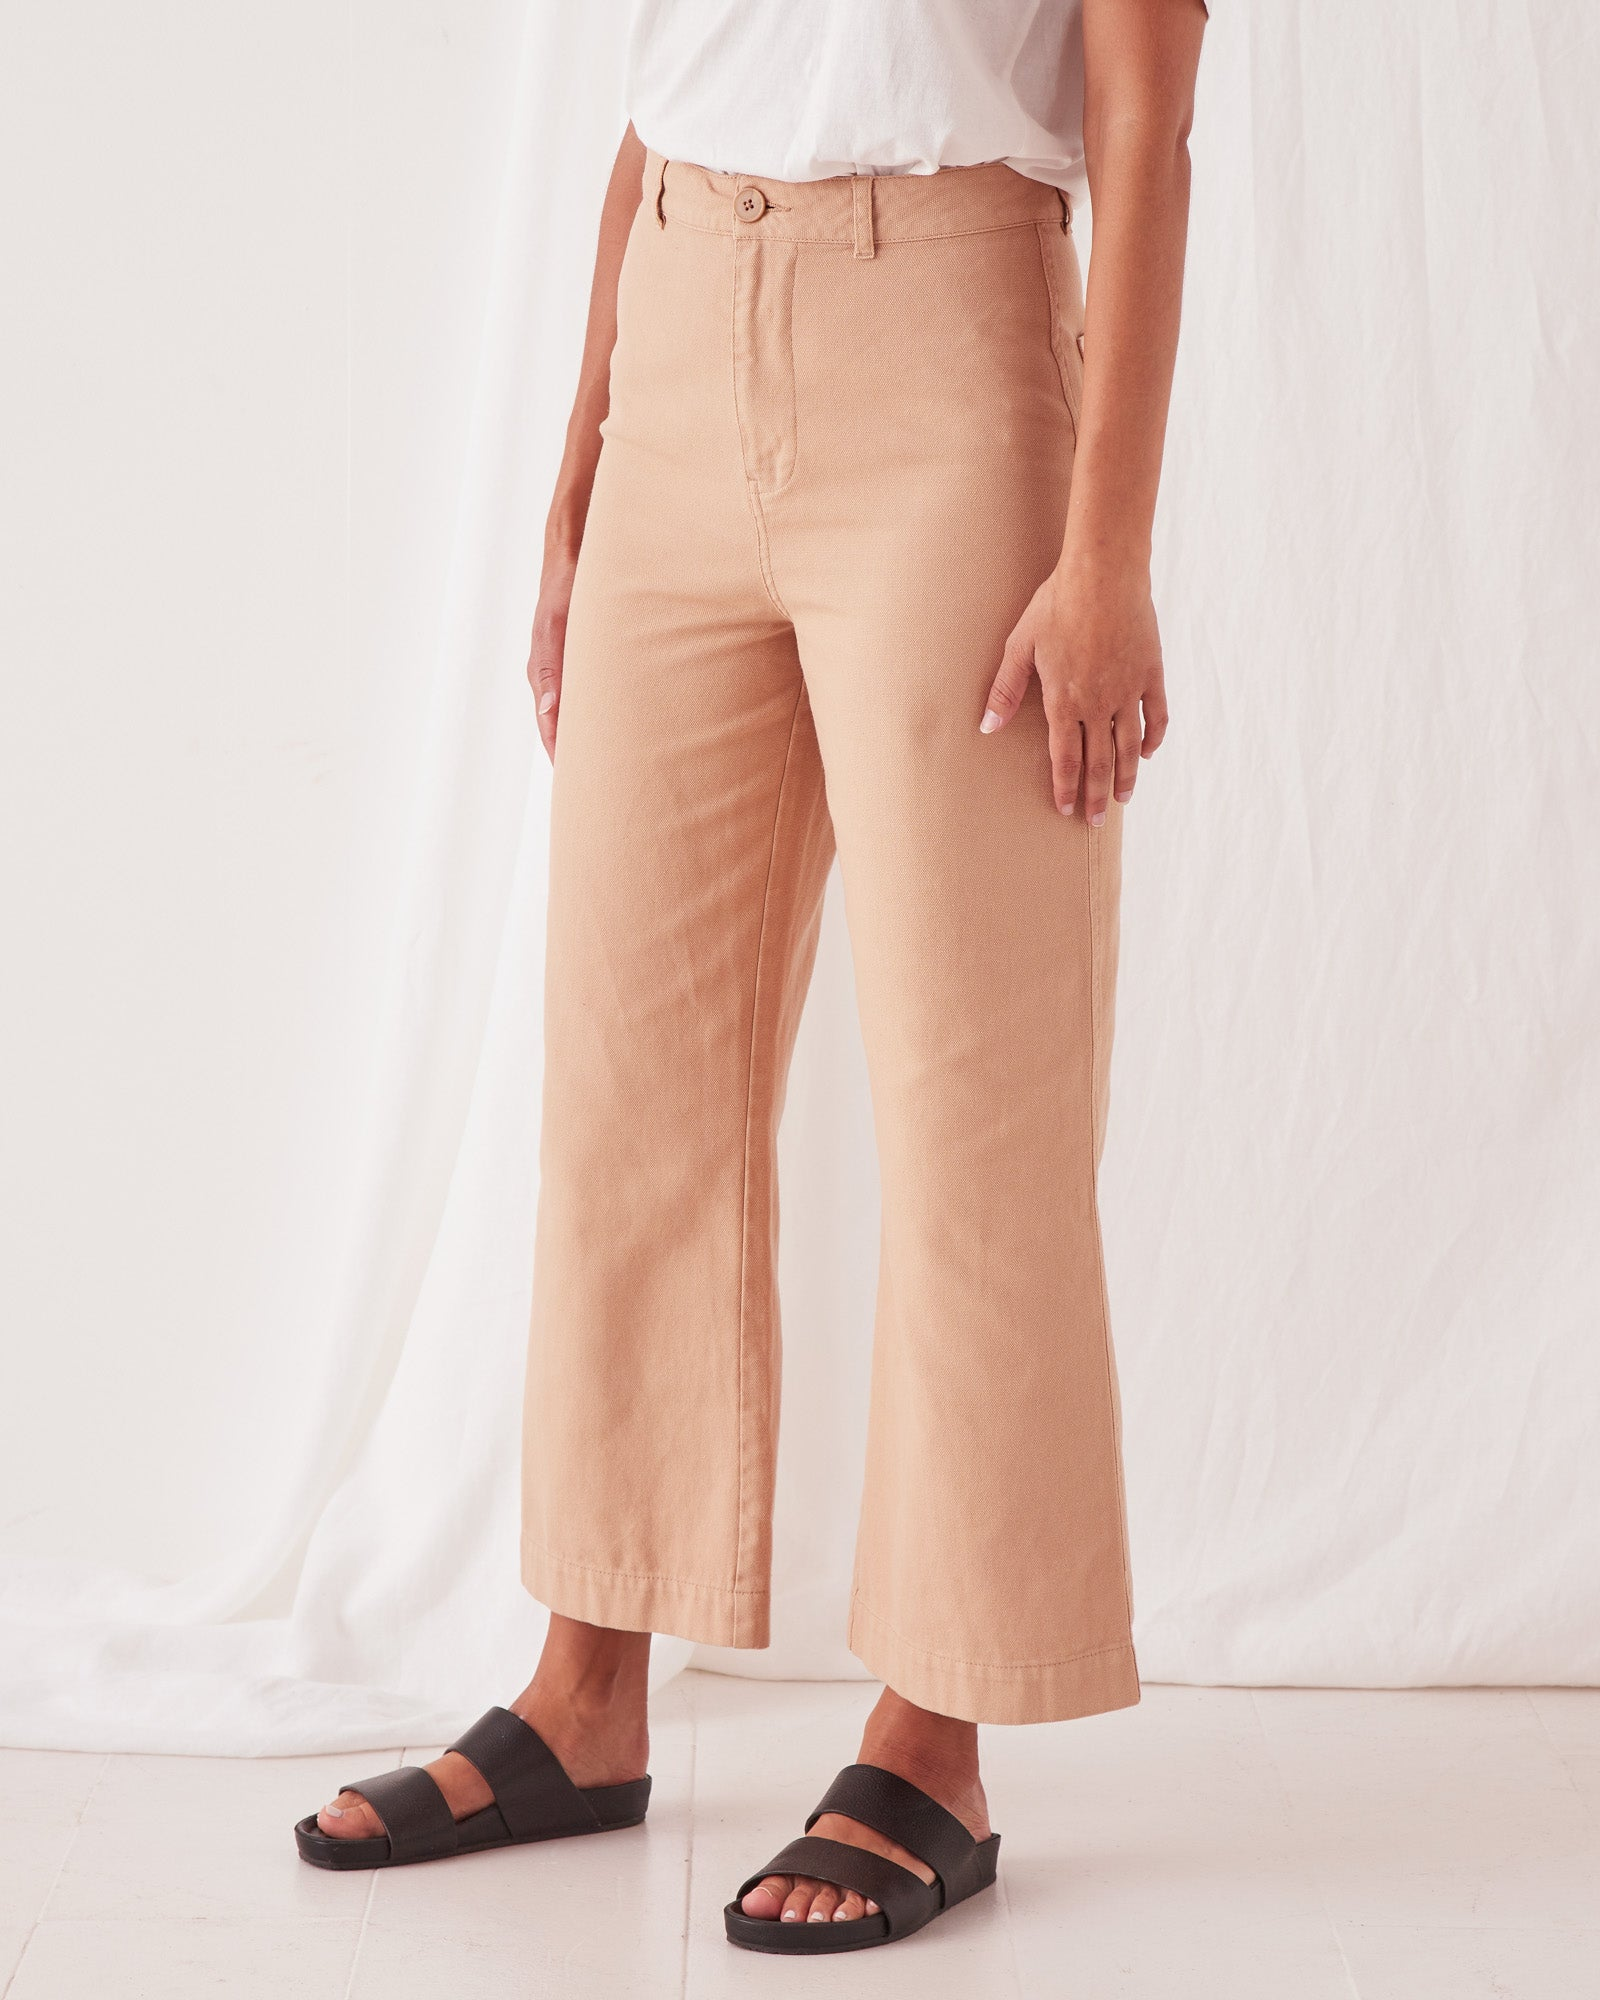 Tala Canvas Pants